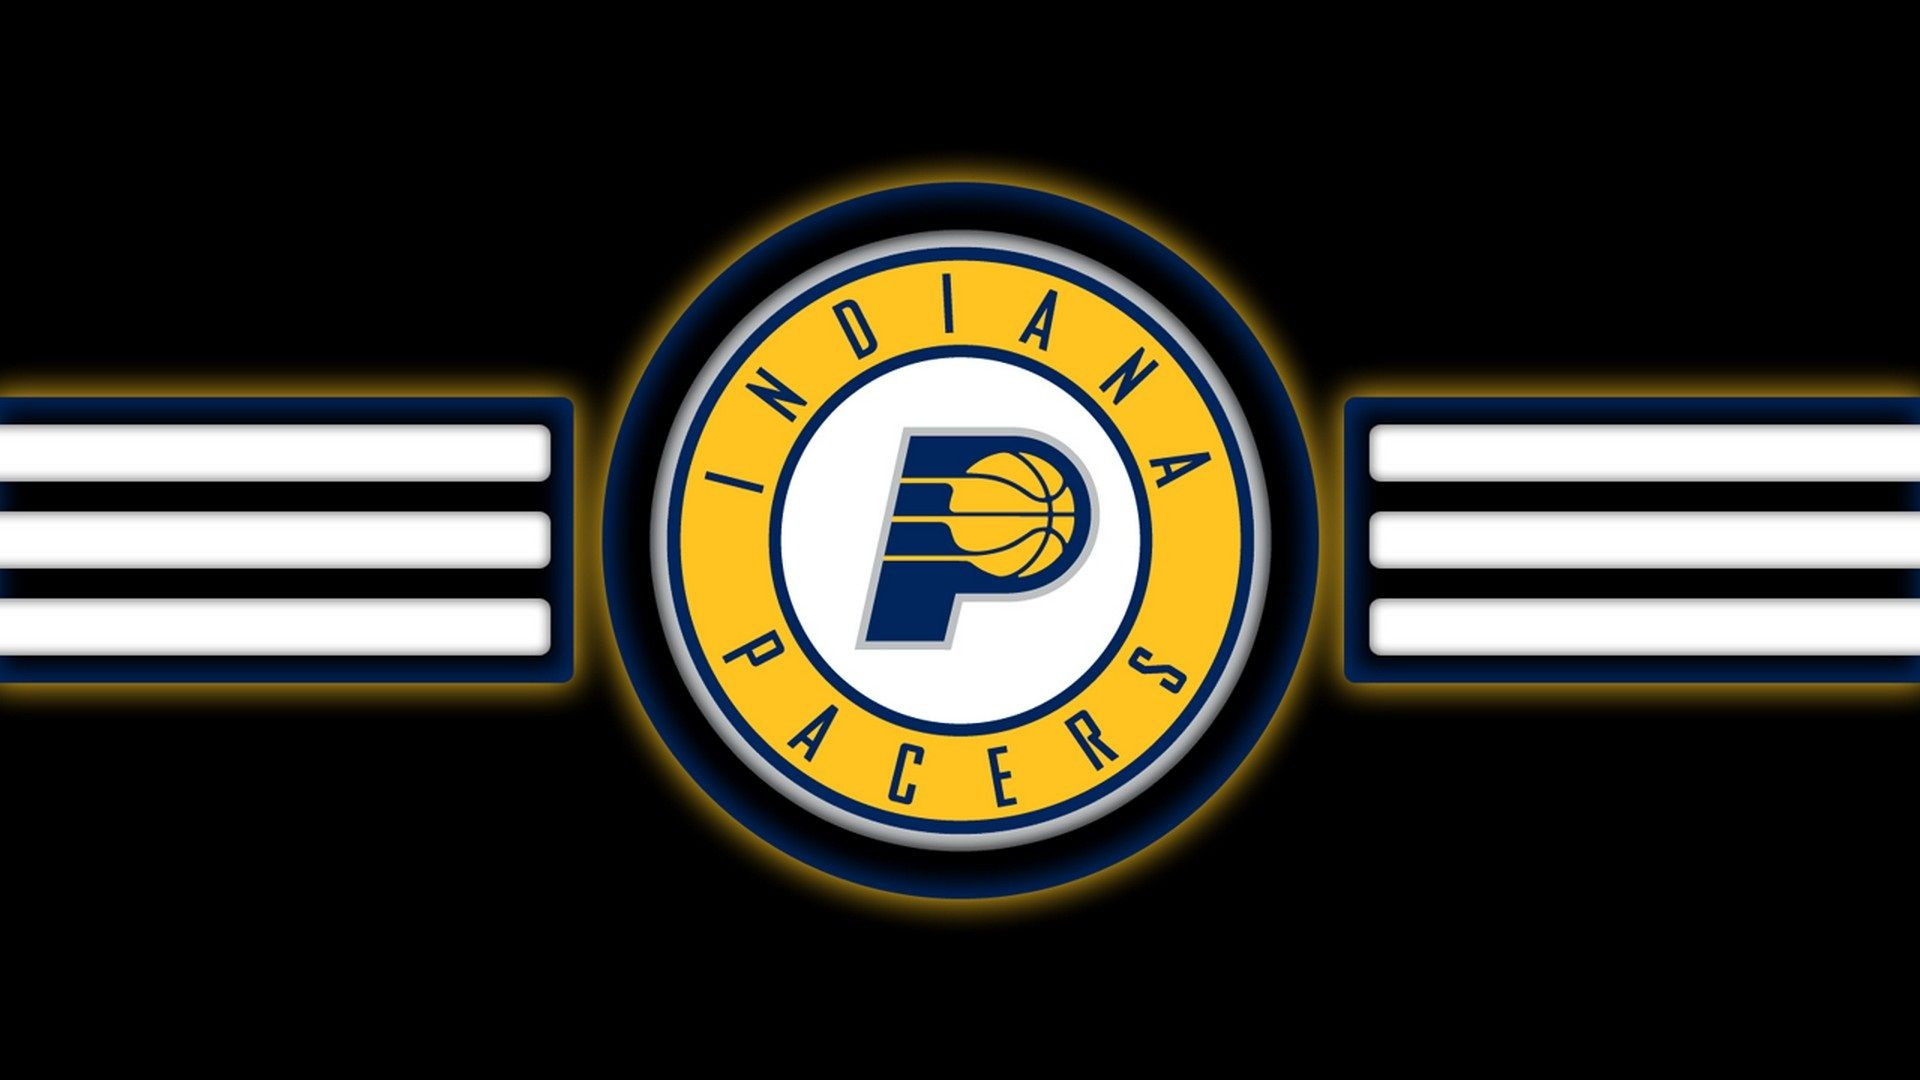 Indiana Pacers Wallpaper Hd 2021 Basketball Wallpaper Indiana Pacers Sports Flags Basketball Wallpaper